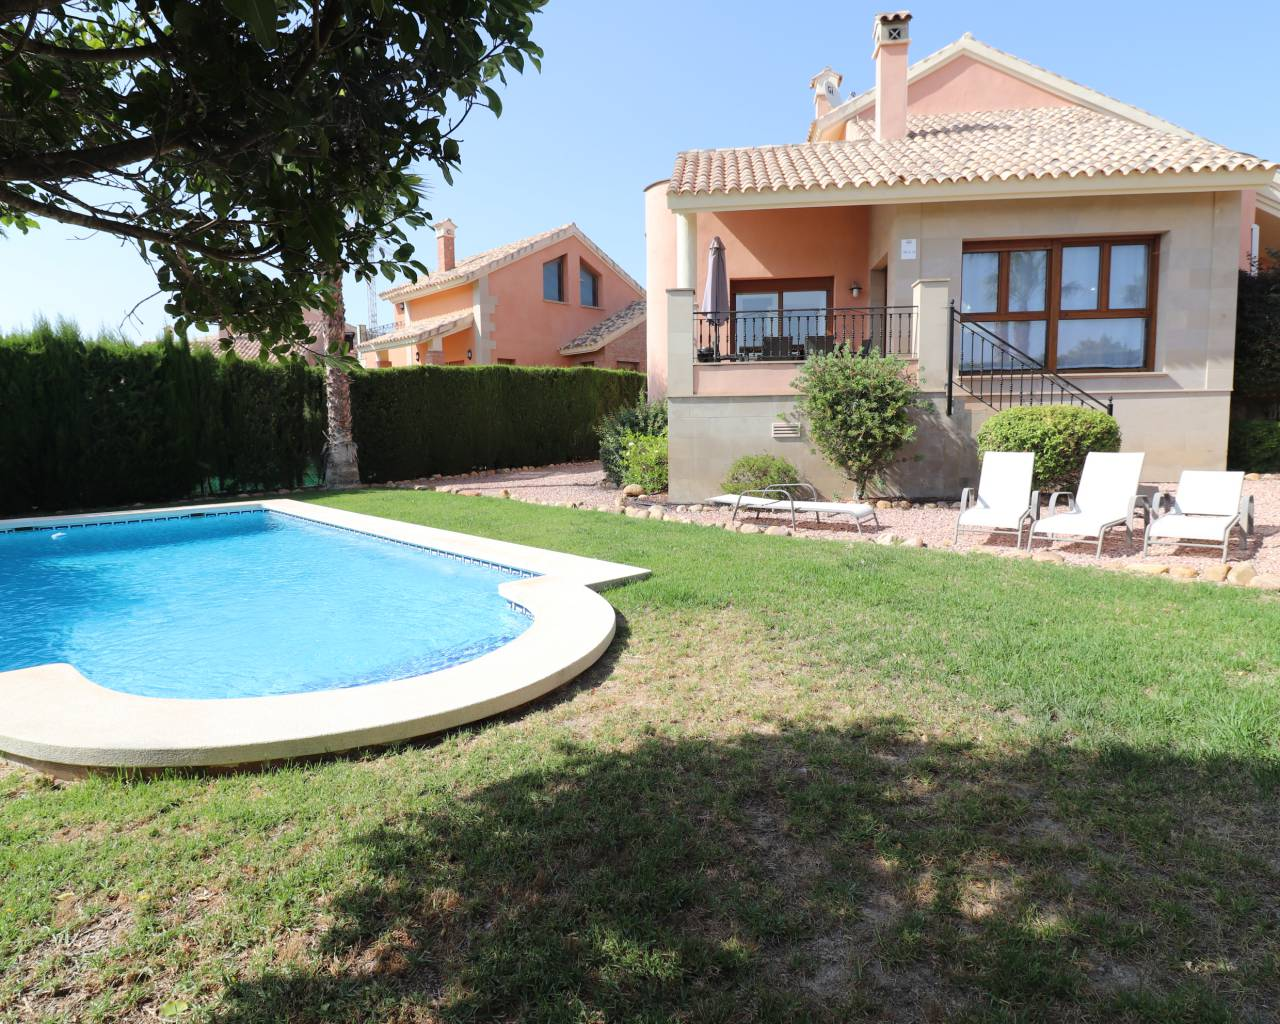 Sale - Detached Villa - Algorfa - La Finca Golf Resort